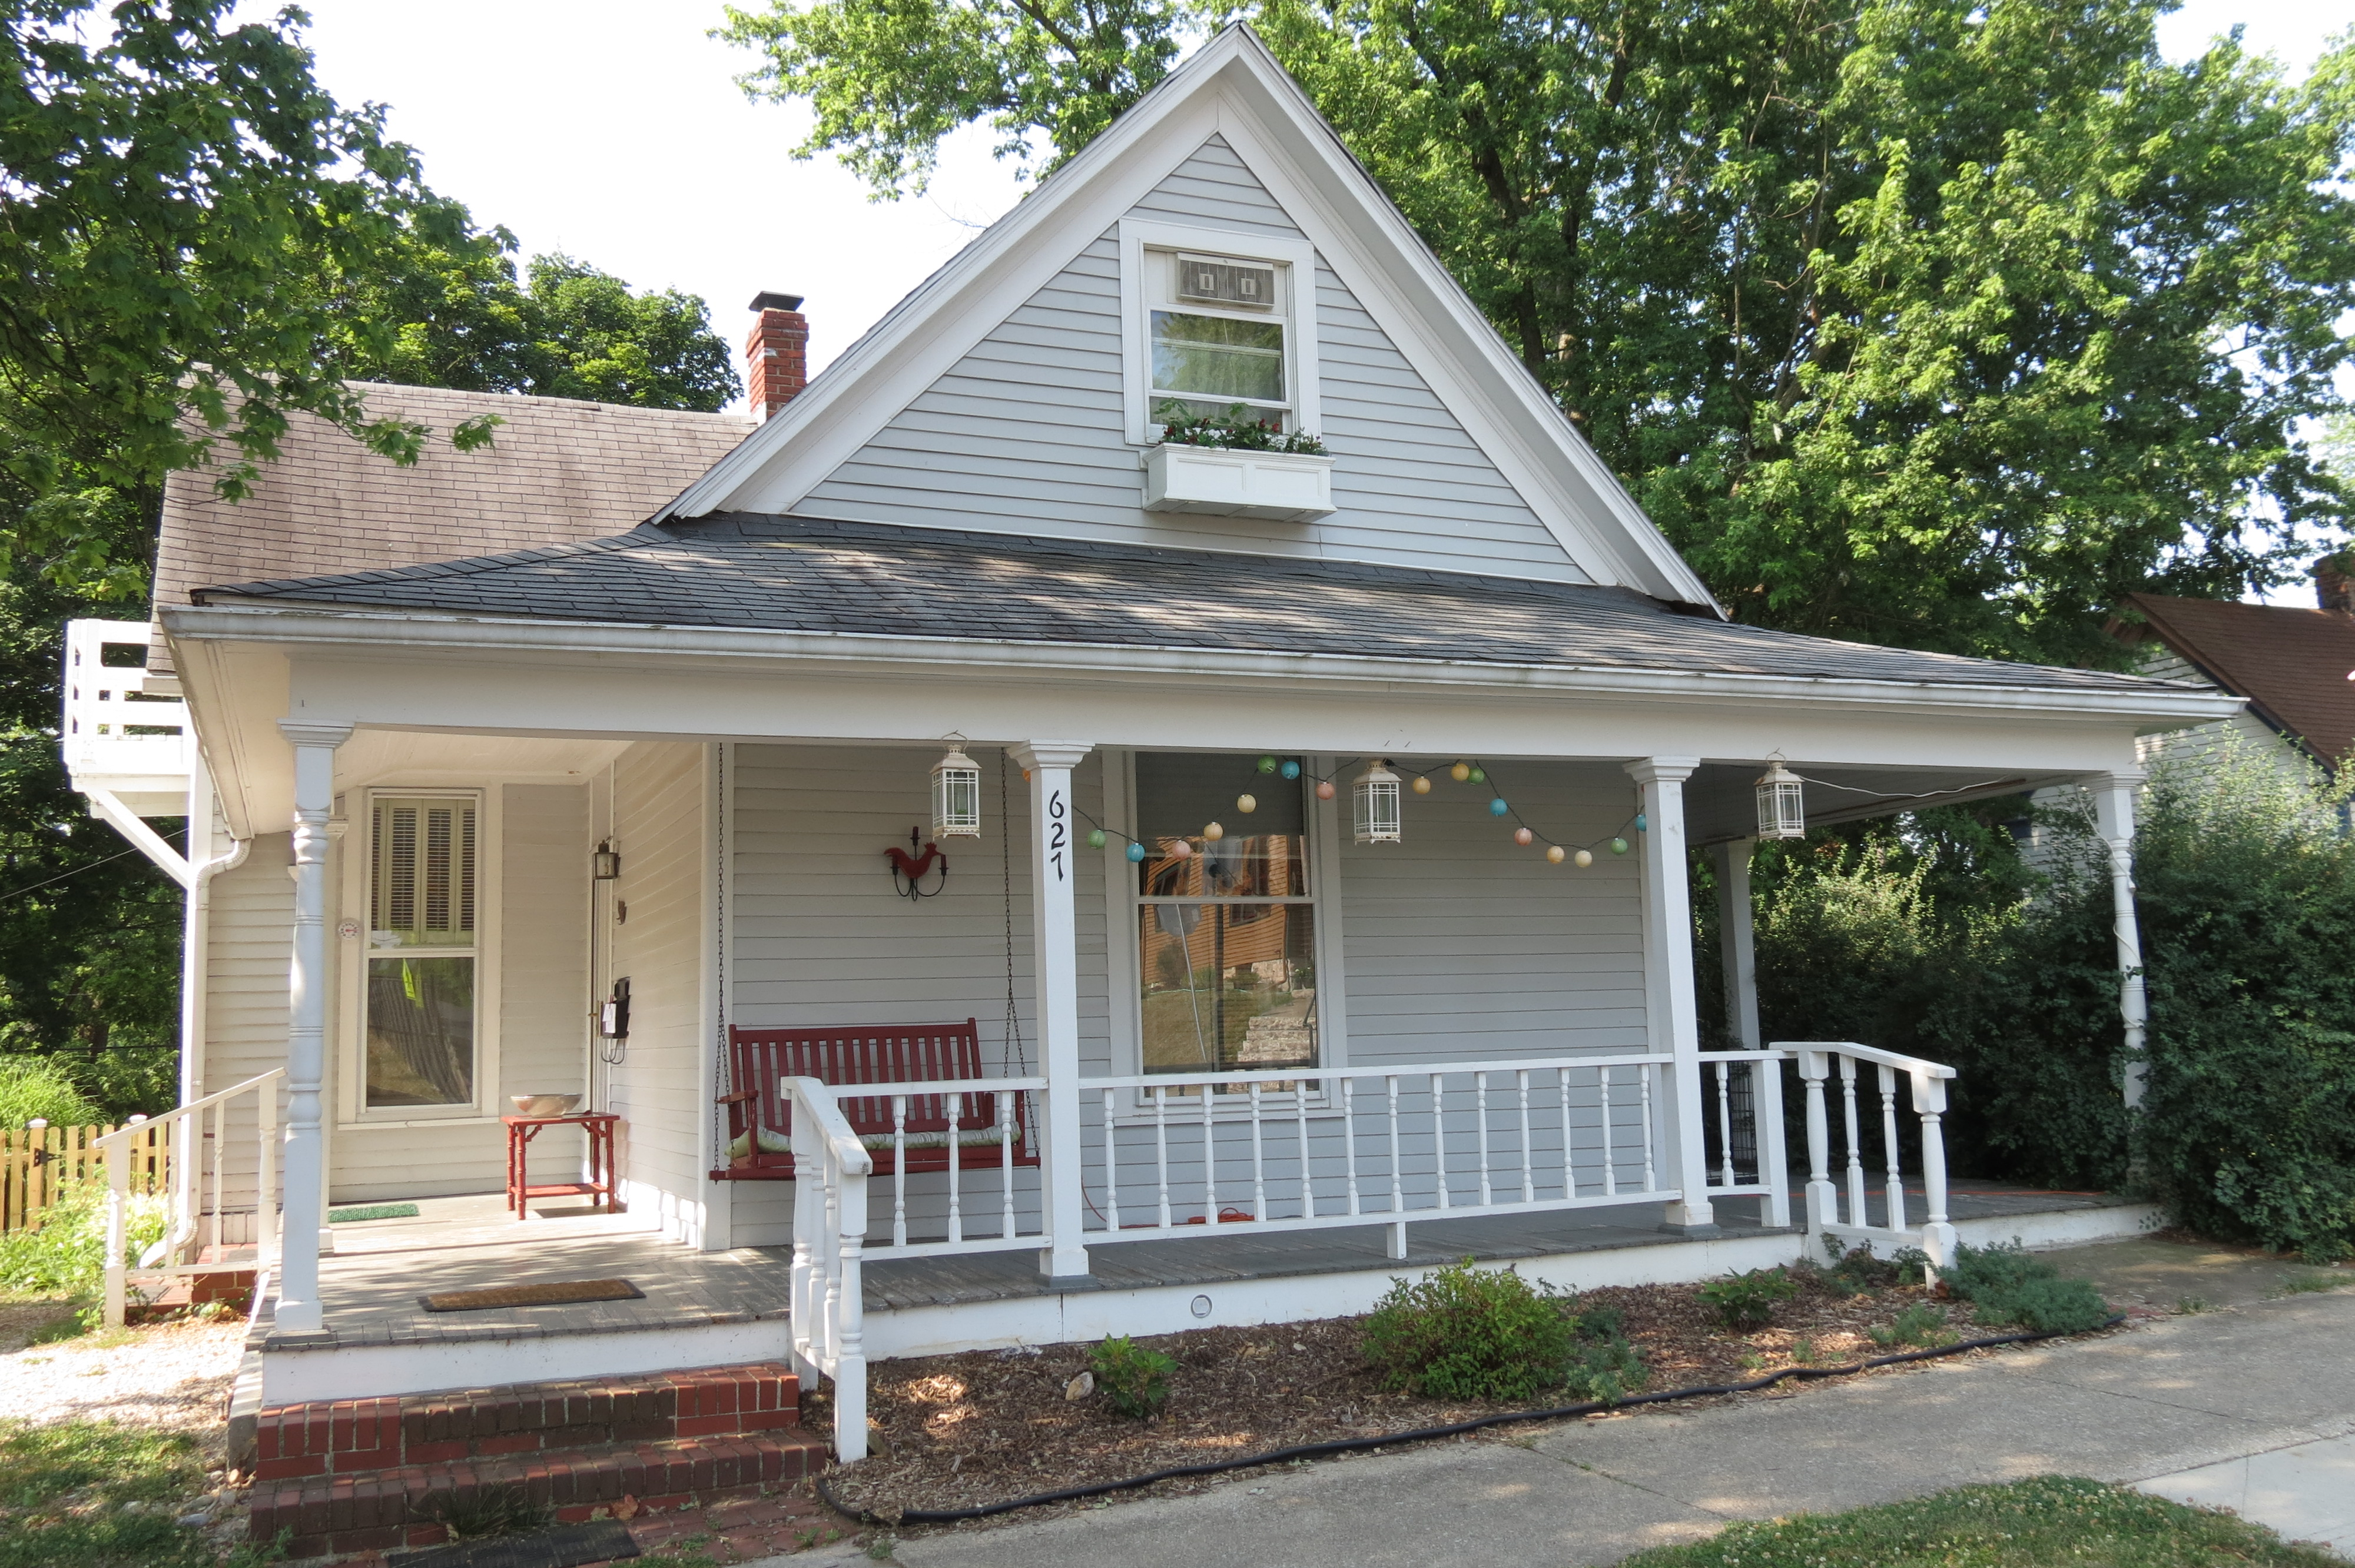 French Country Small House With Wrap Around Porch Living The Good Life In A Bloomington Cottage Housesandbooks